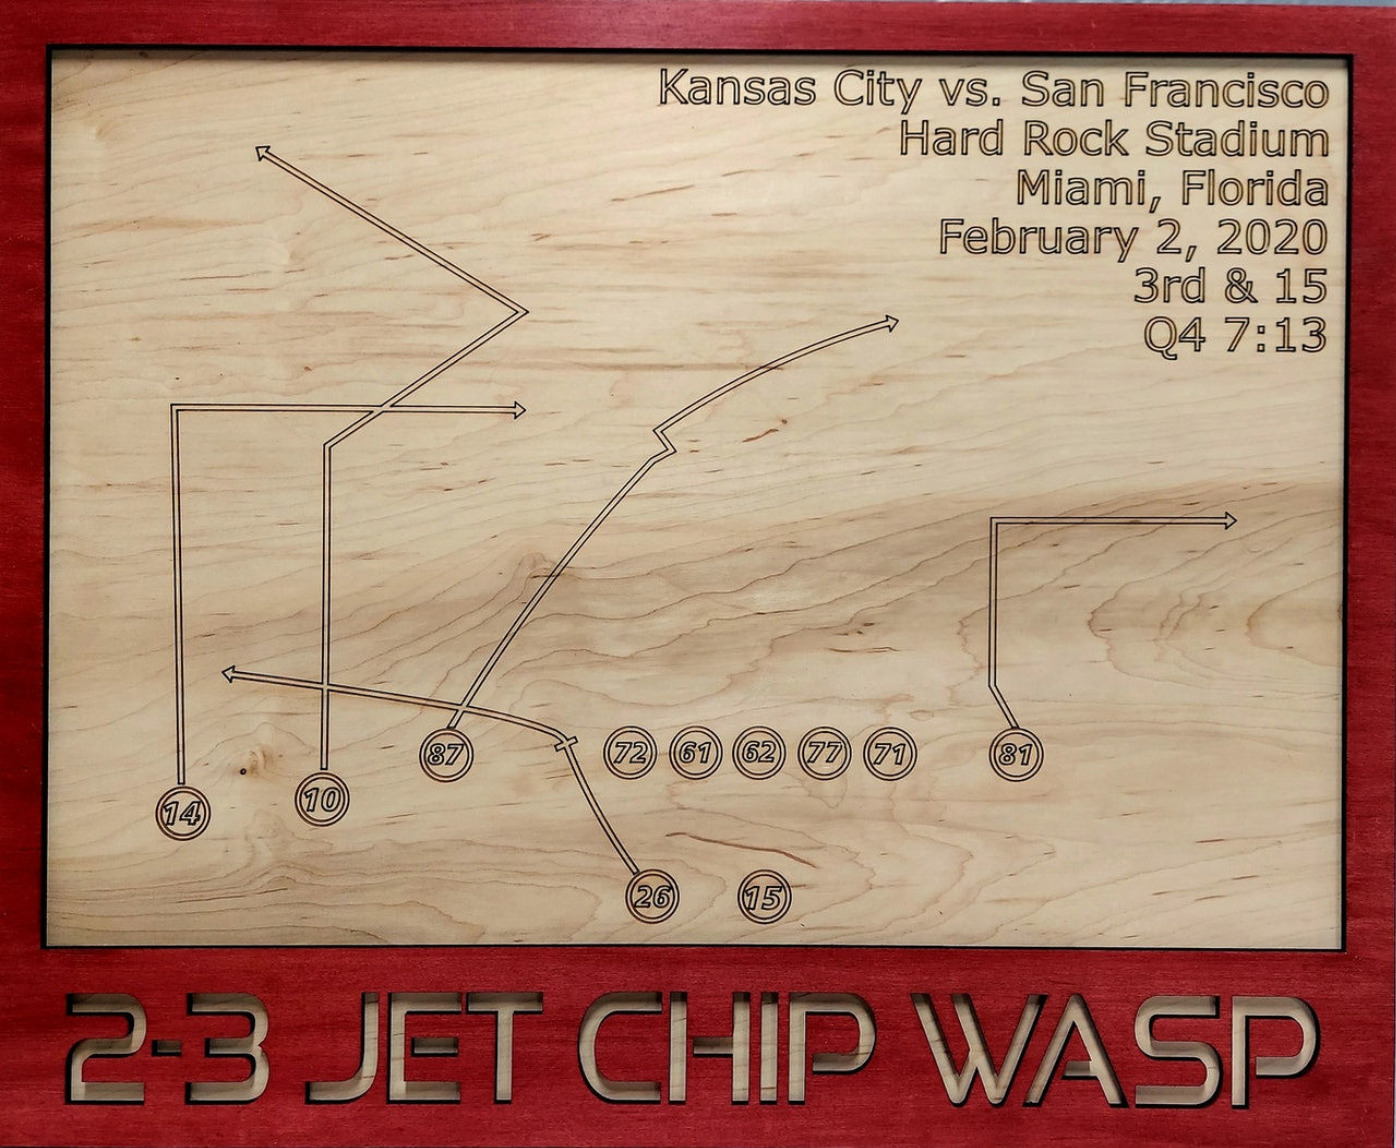 2-3 Jet Chip Wasp Wood Play Diagram -  Kansas City Football Play Chiefs